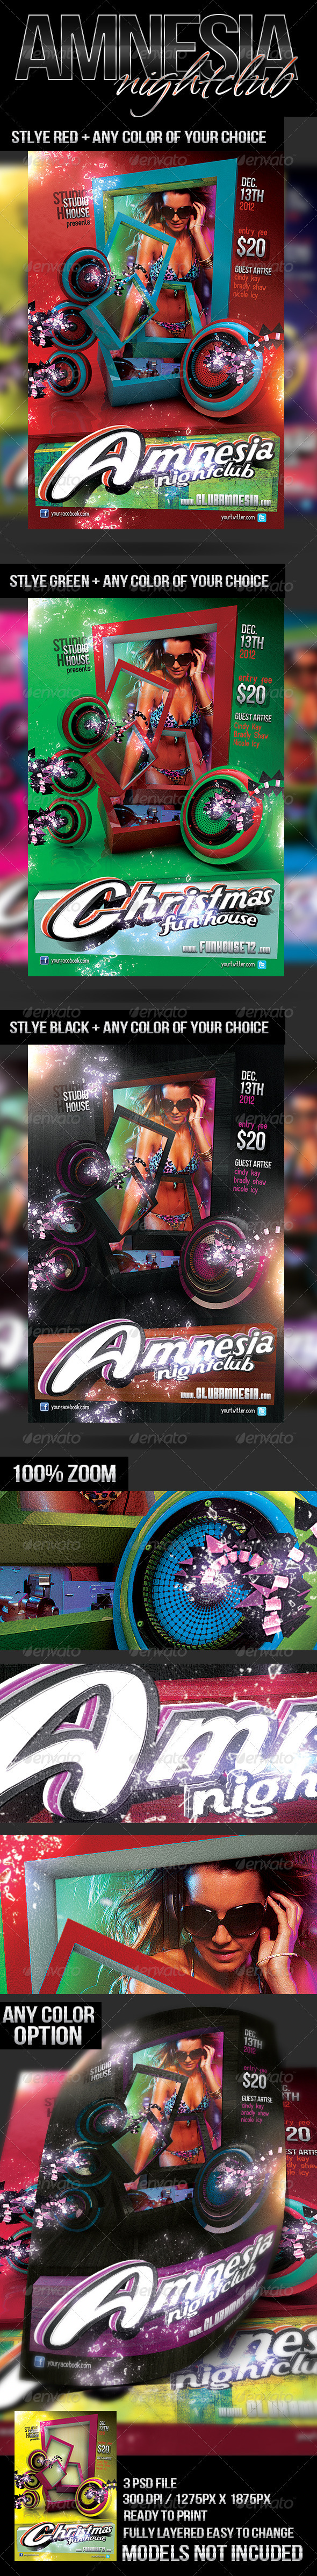 Amnesia Nightclub   - Clubs & Parties Events